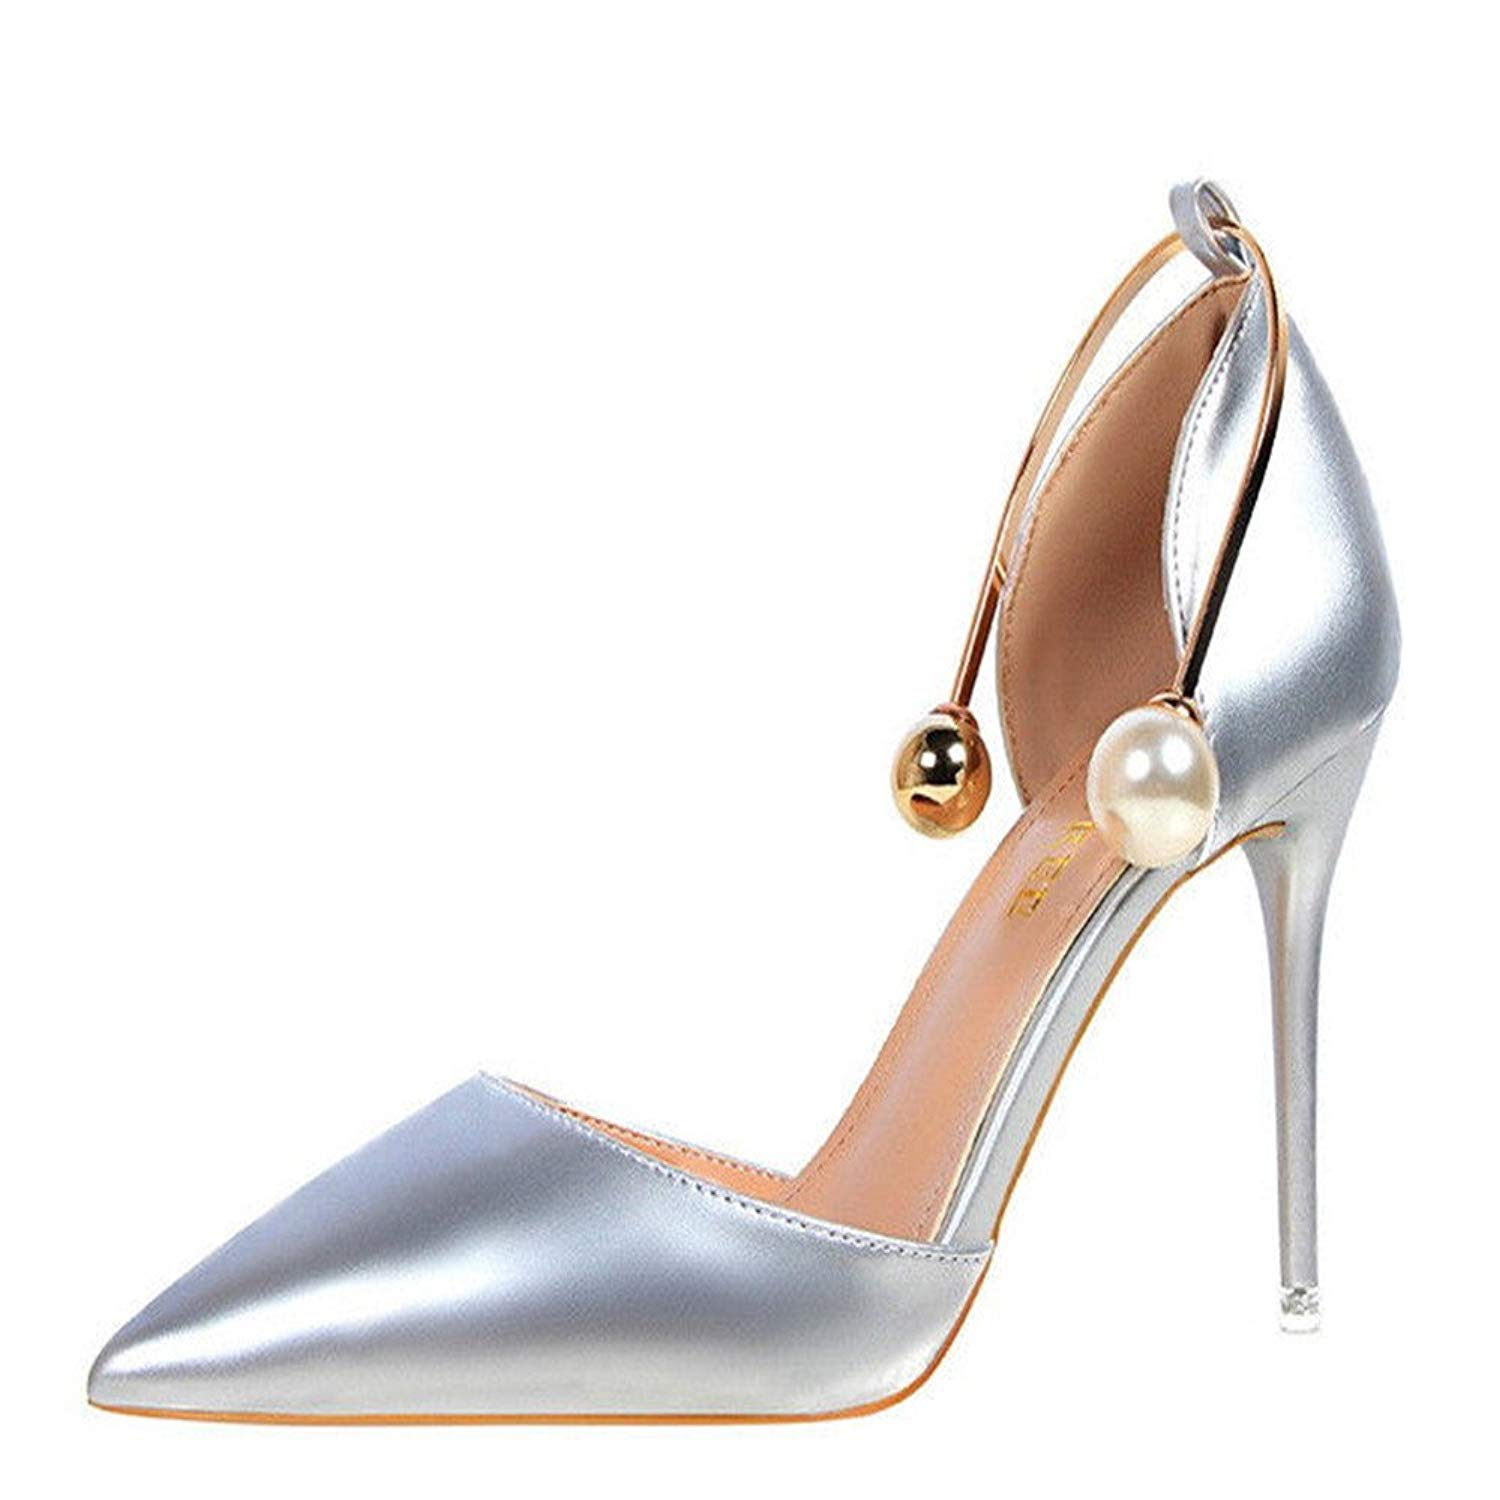 beb41a55b23c Get Quotations · Manyis New Women High Heels Shoes Ankle Pearl Stilettos  Pointed-Toe Metal Pump Sandals